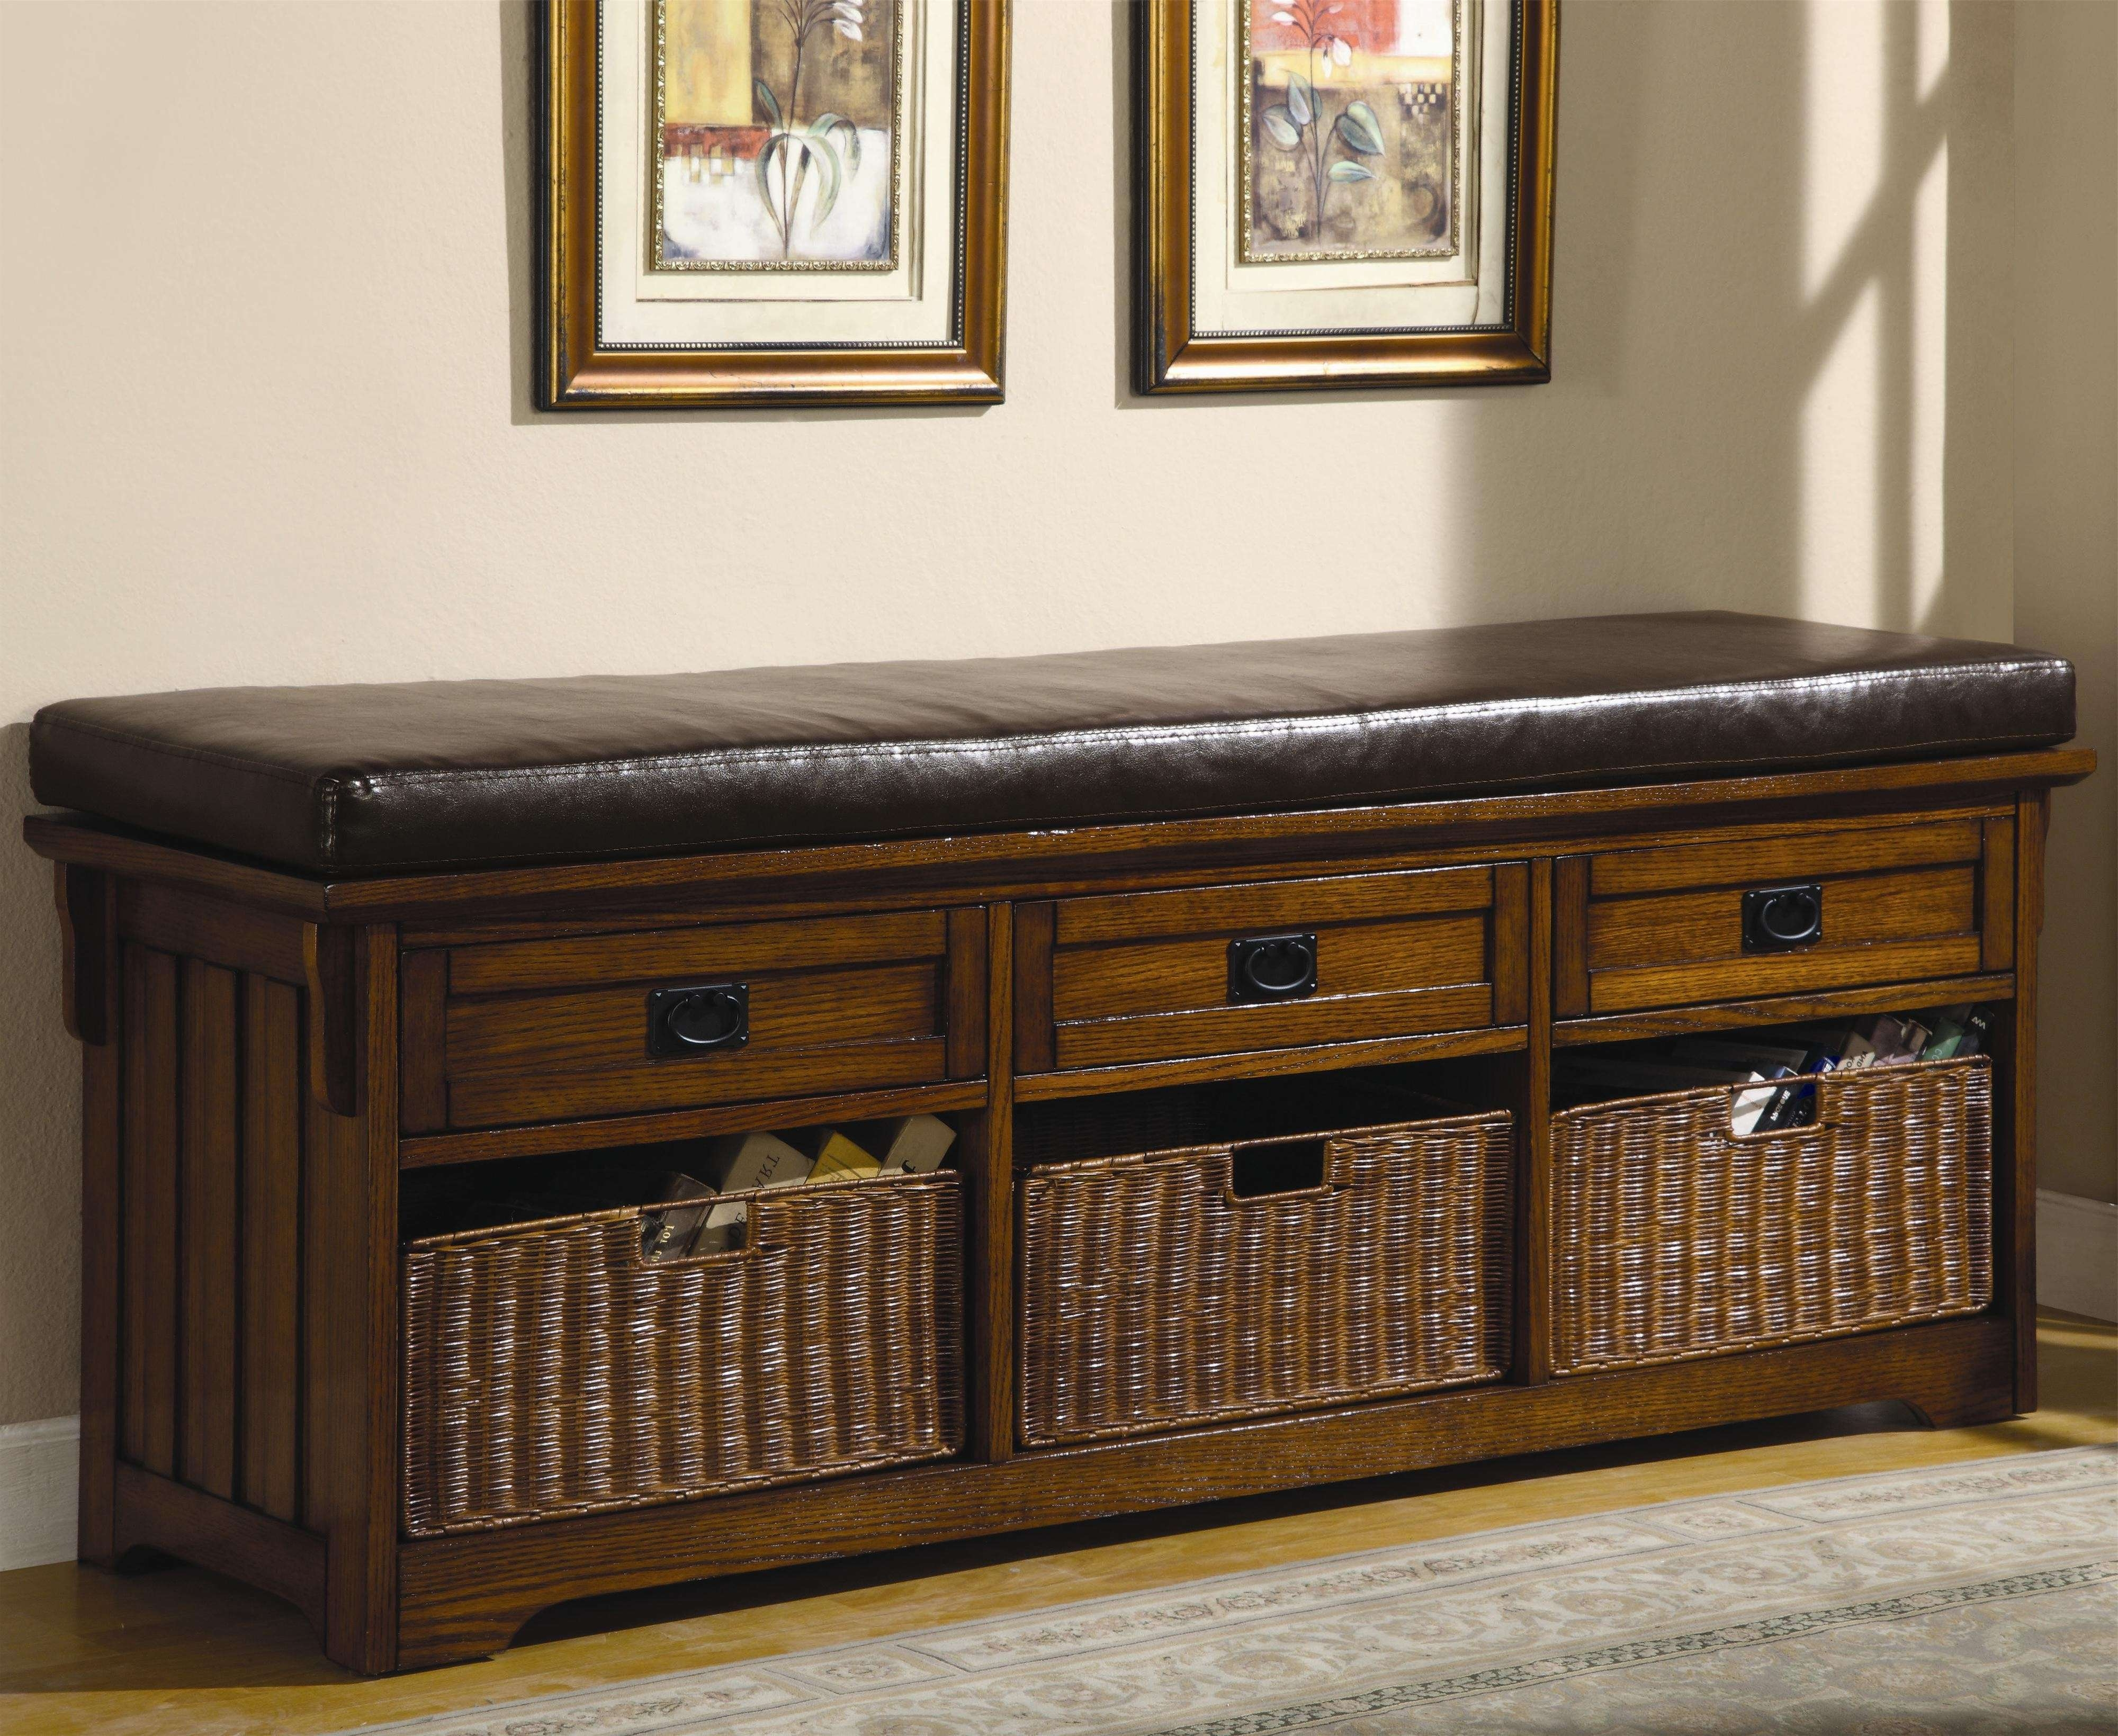 Benches Large Storage Bench With Baskets Lowest Price – Sofa Pertaining To Tv Stands With Storage Baskets (View 2 of 15)